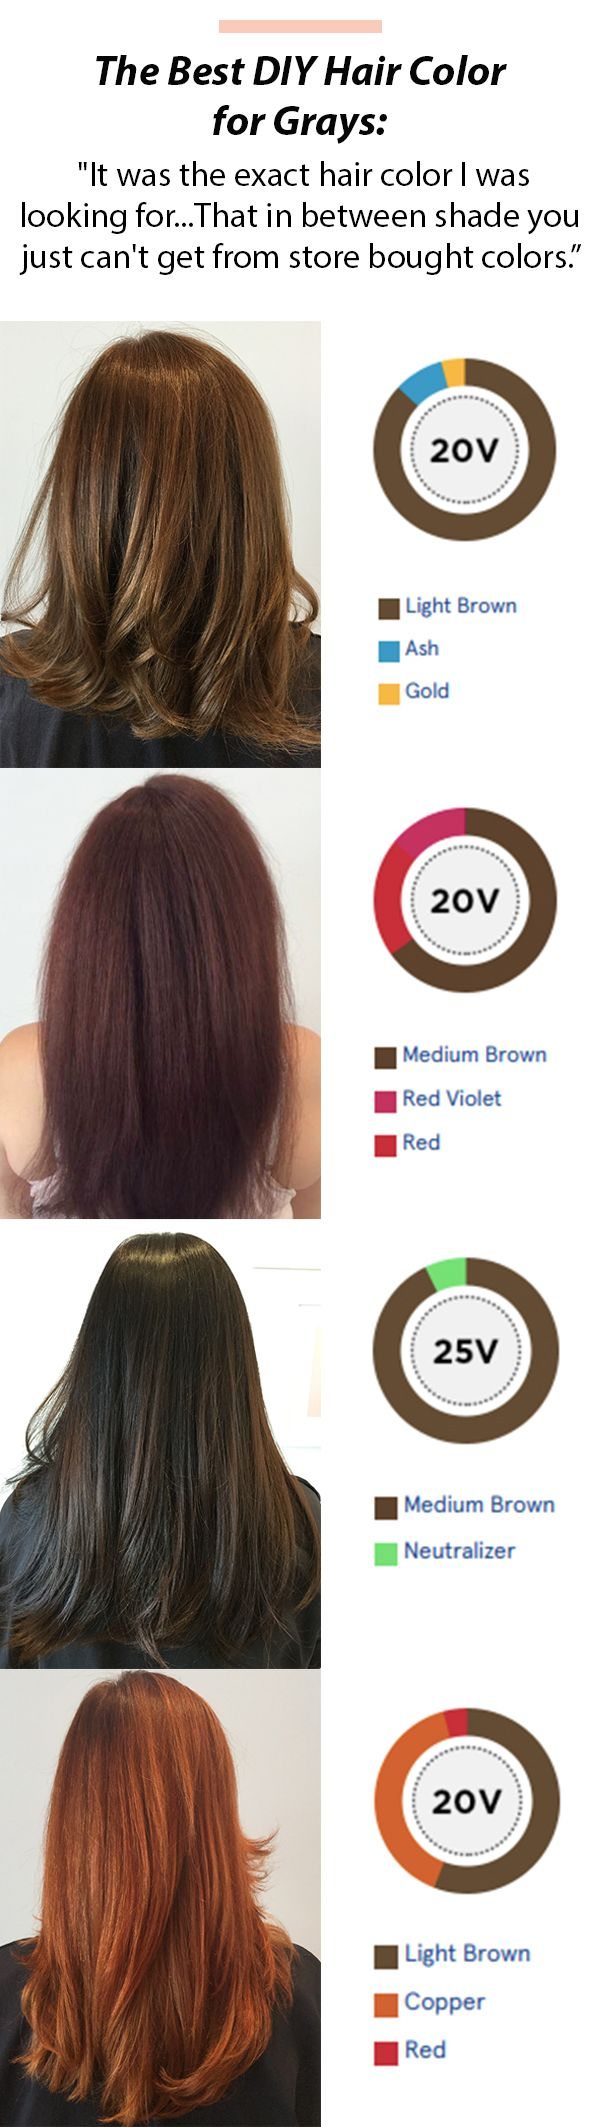 Simple Solution For Coloring Gray Hair I Love This It Has Saved Me Bundles Of Money So Easy To Use And Always C Grey Hair Color Diy Hair Color Hair Styles